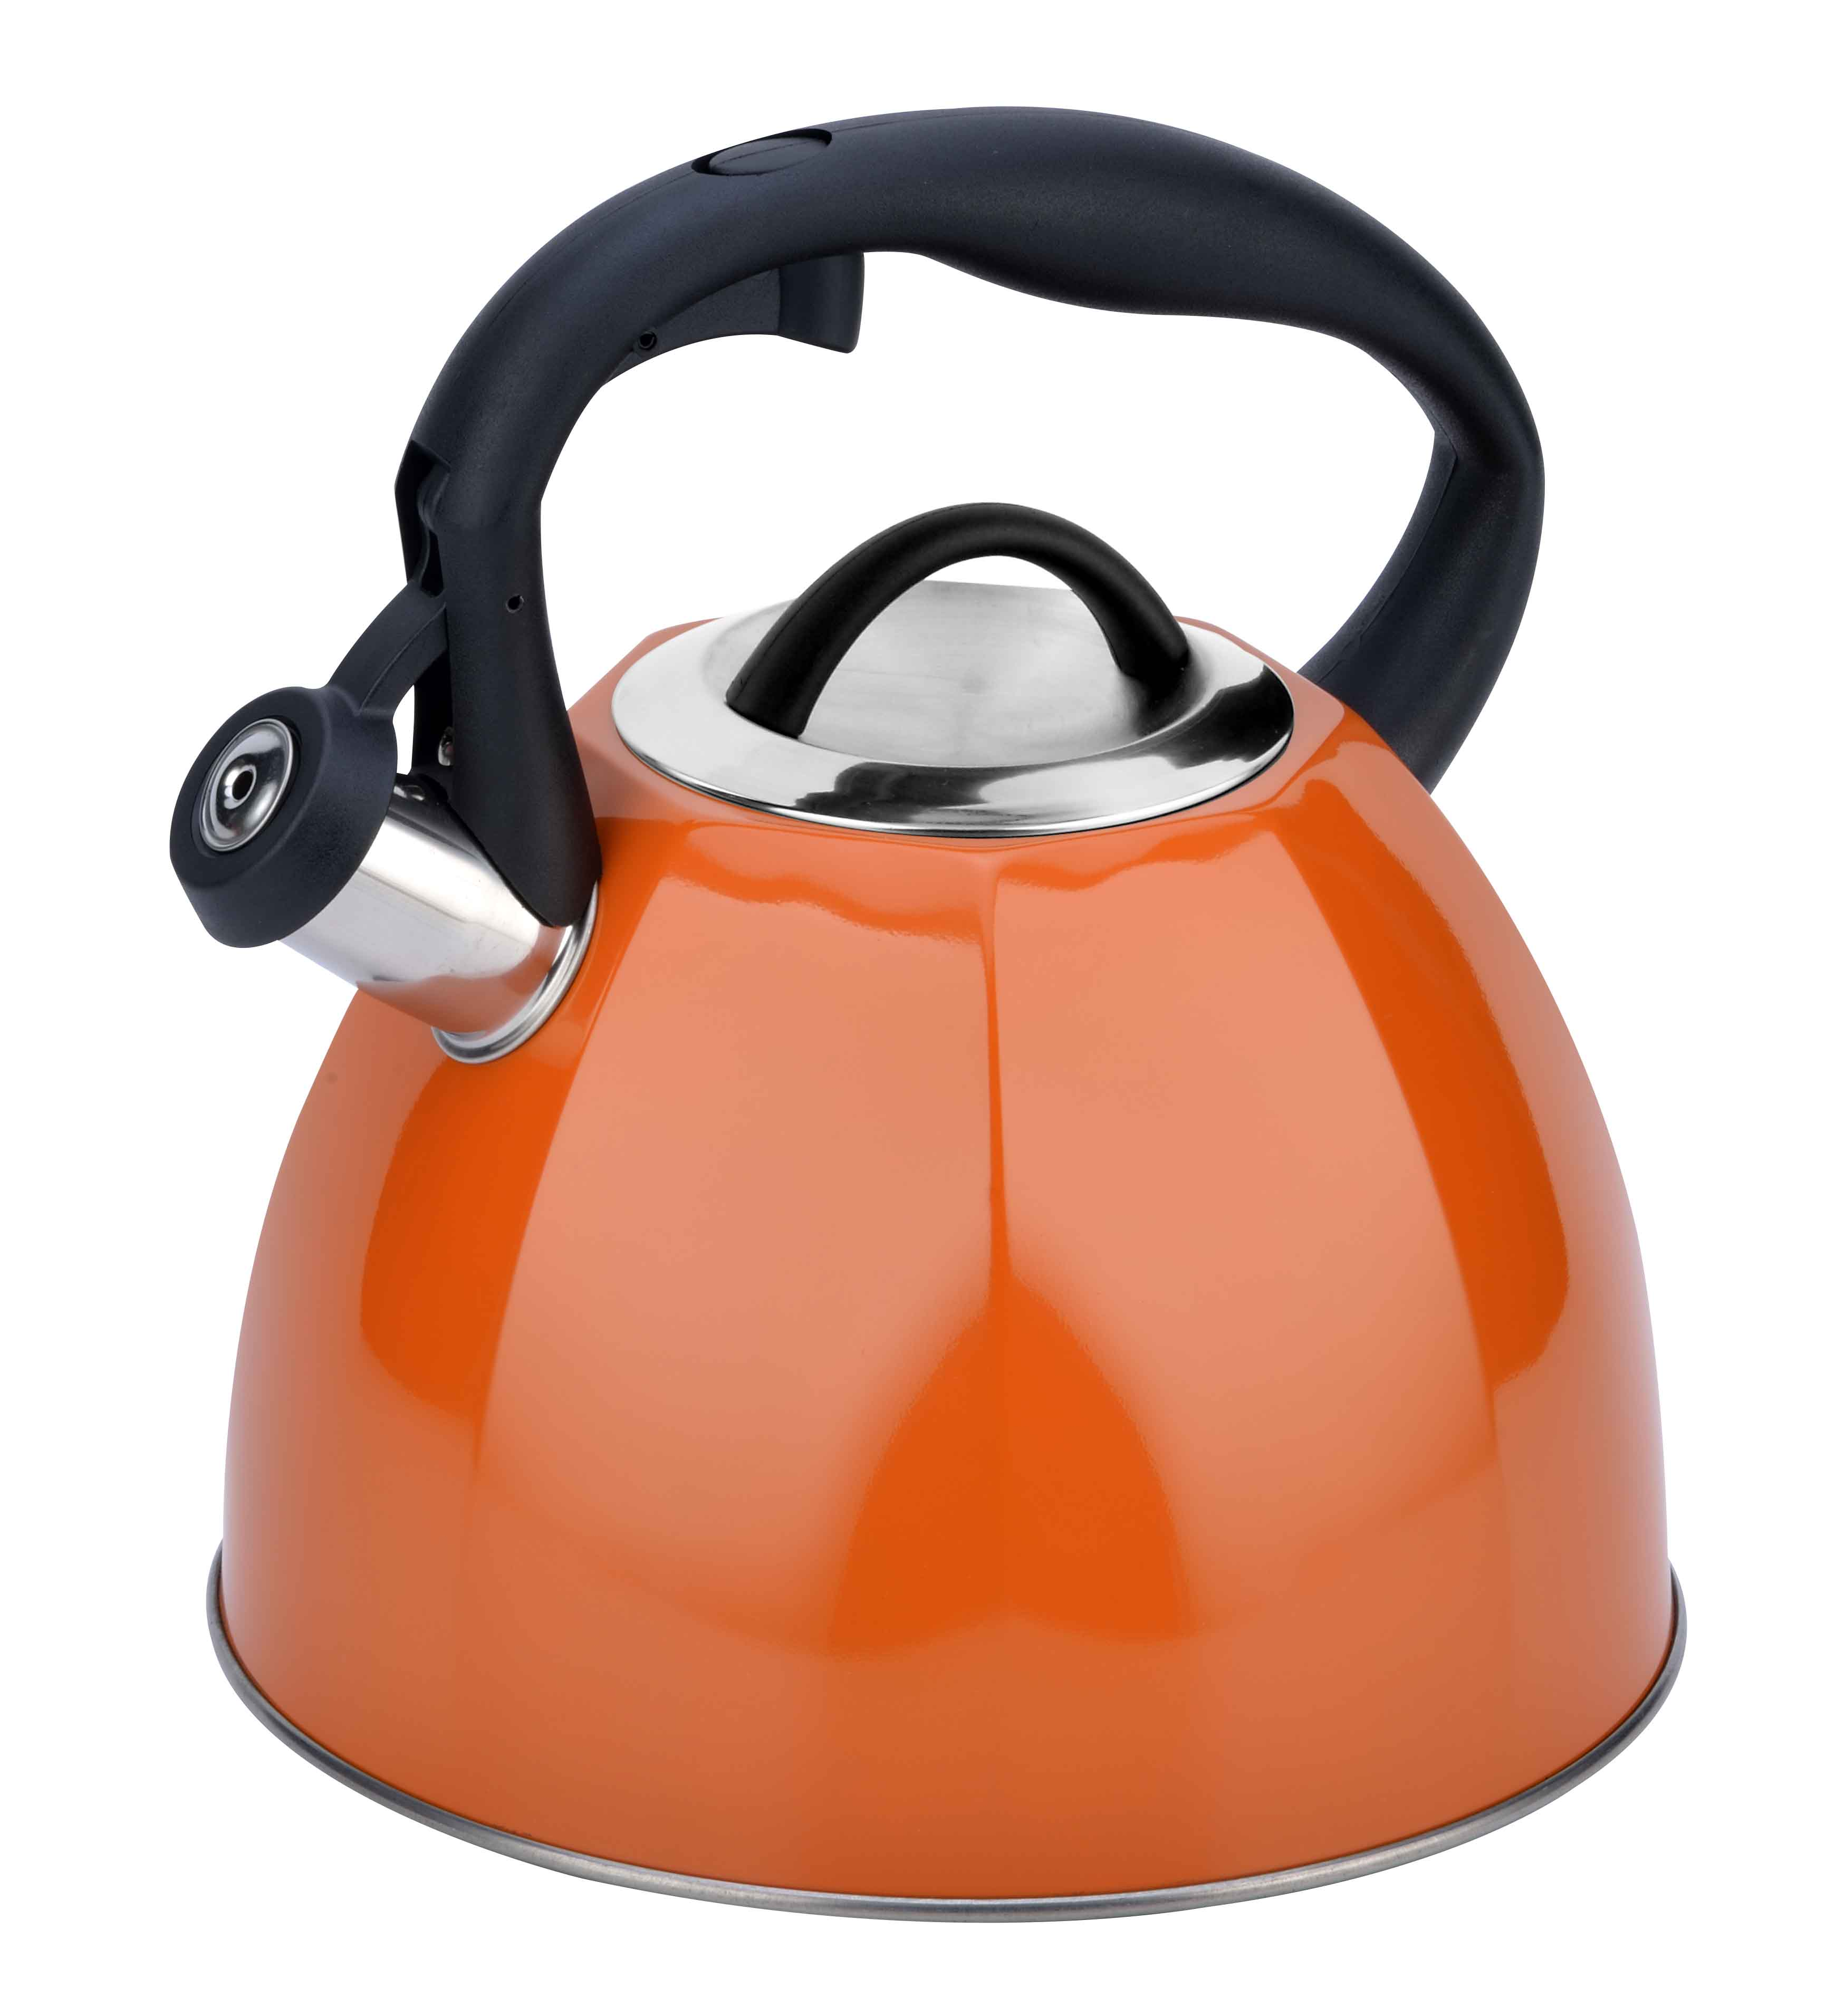 3.5Litre octagon shape tea pot